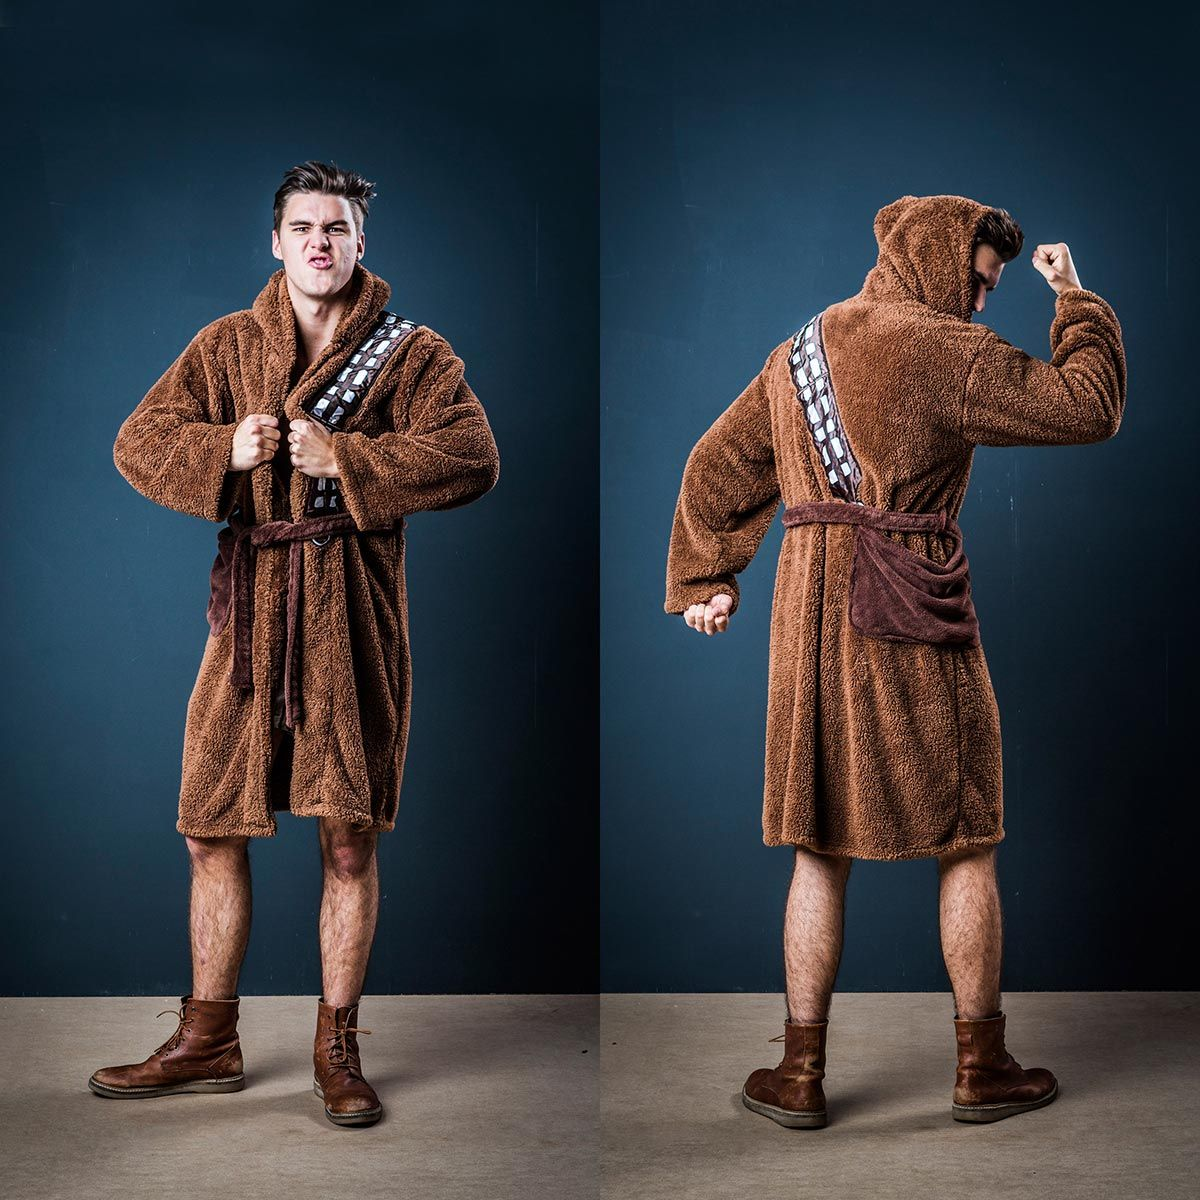 Originelle Geschenkideen - Chewbacca Bademantel - Star Wars